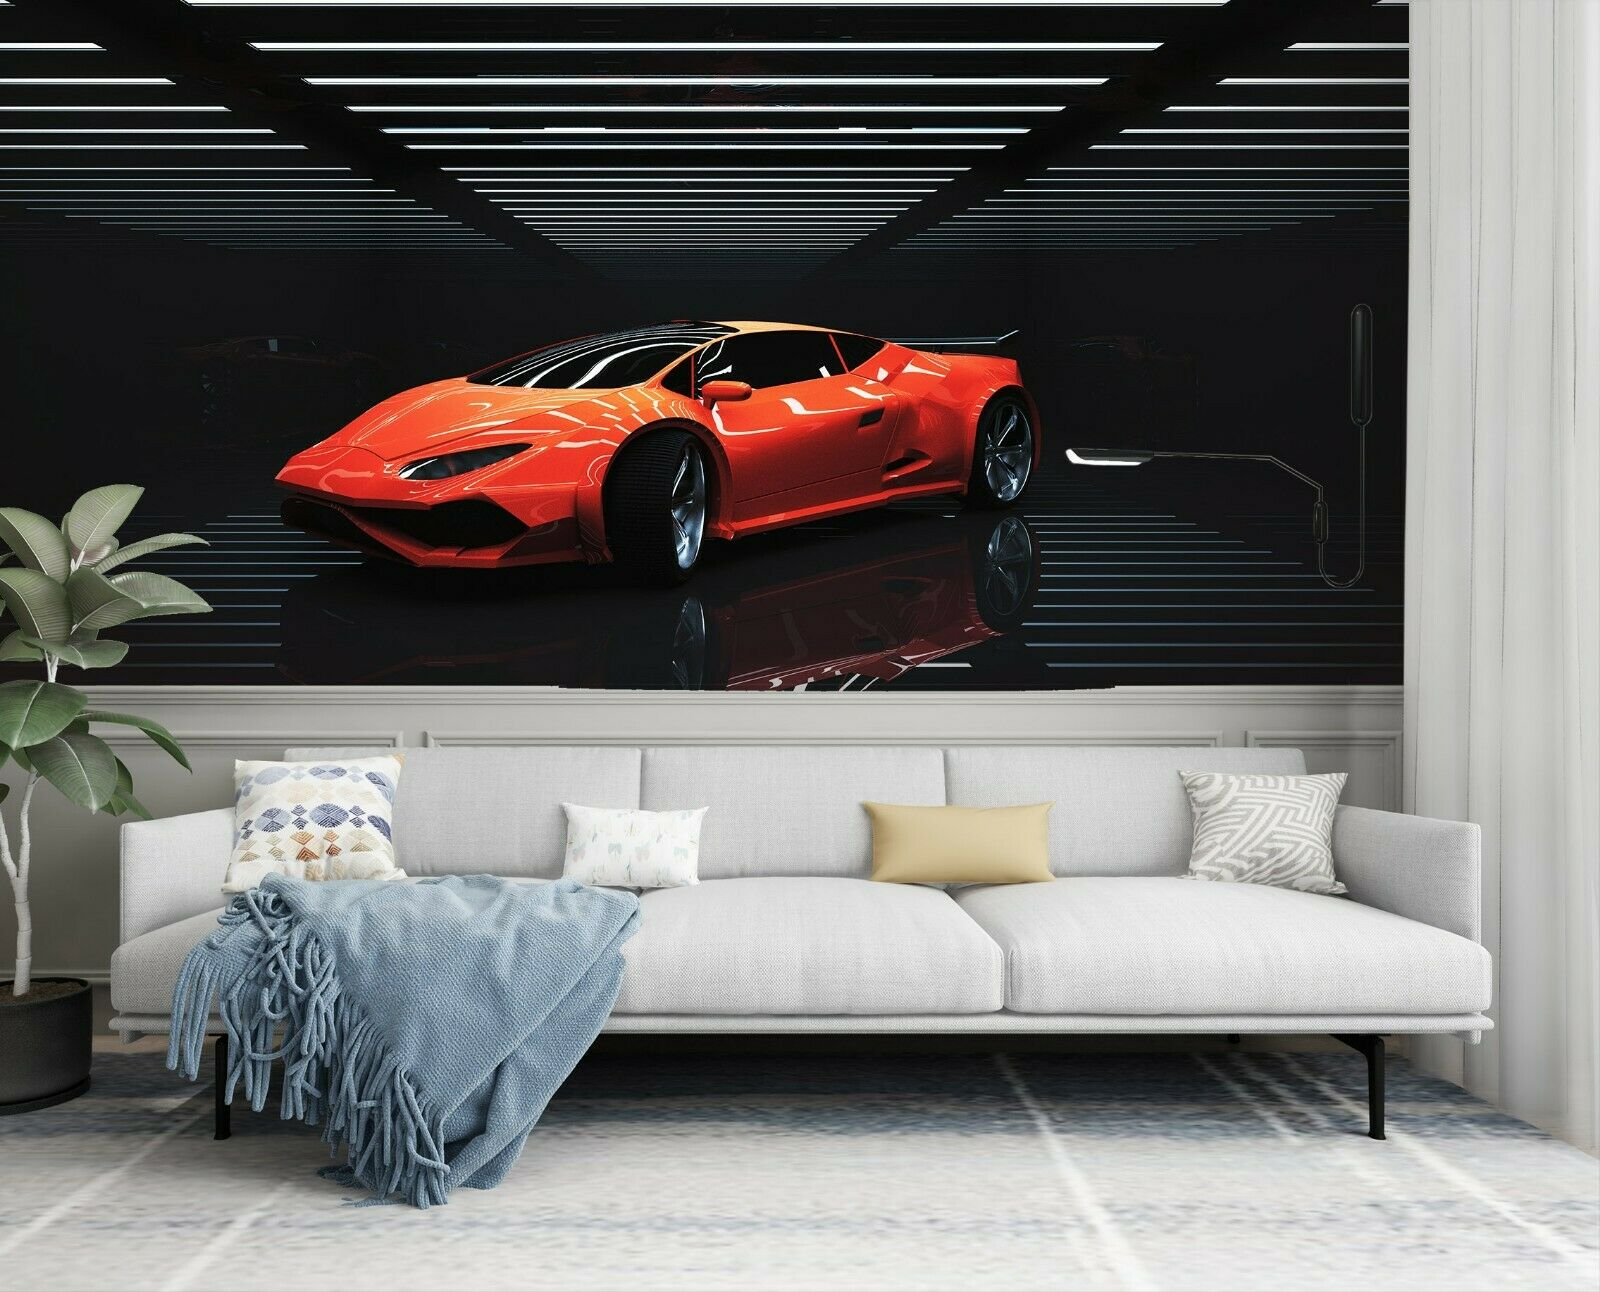 3D rot Coupe I115 Transport Wallpaper Mural Sefl-adhesive Removable Angelia